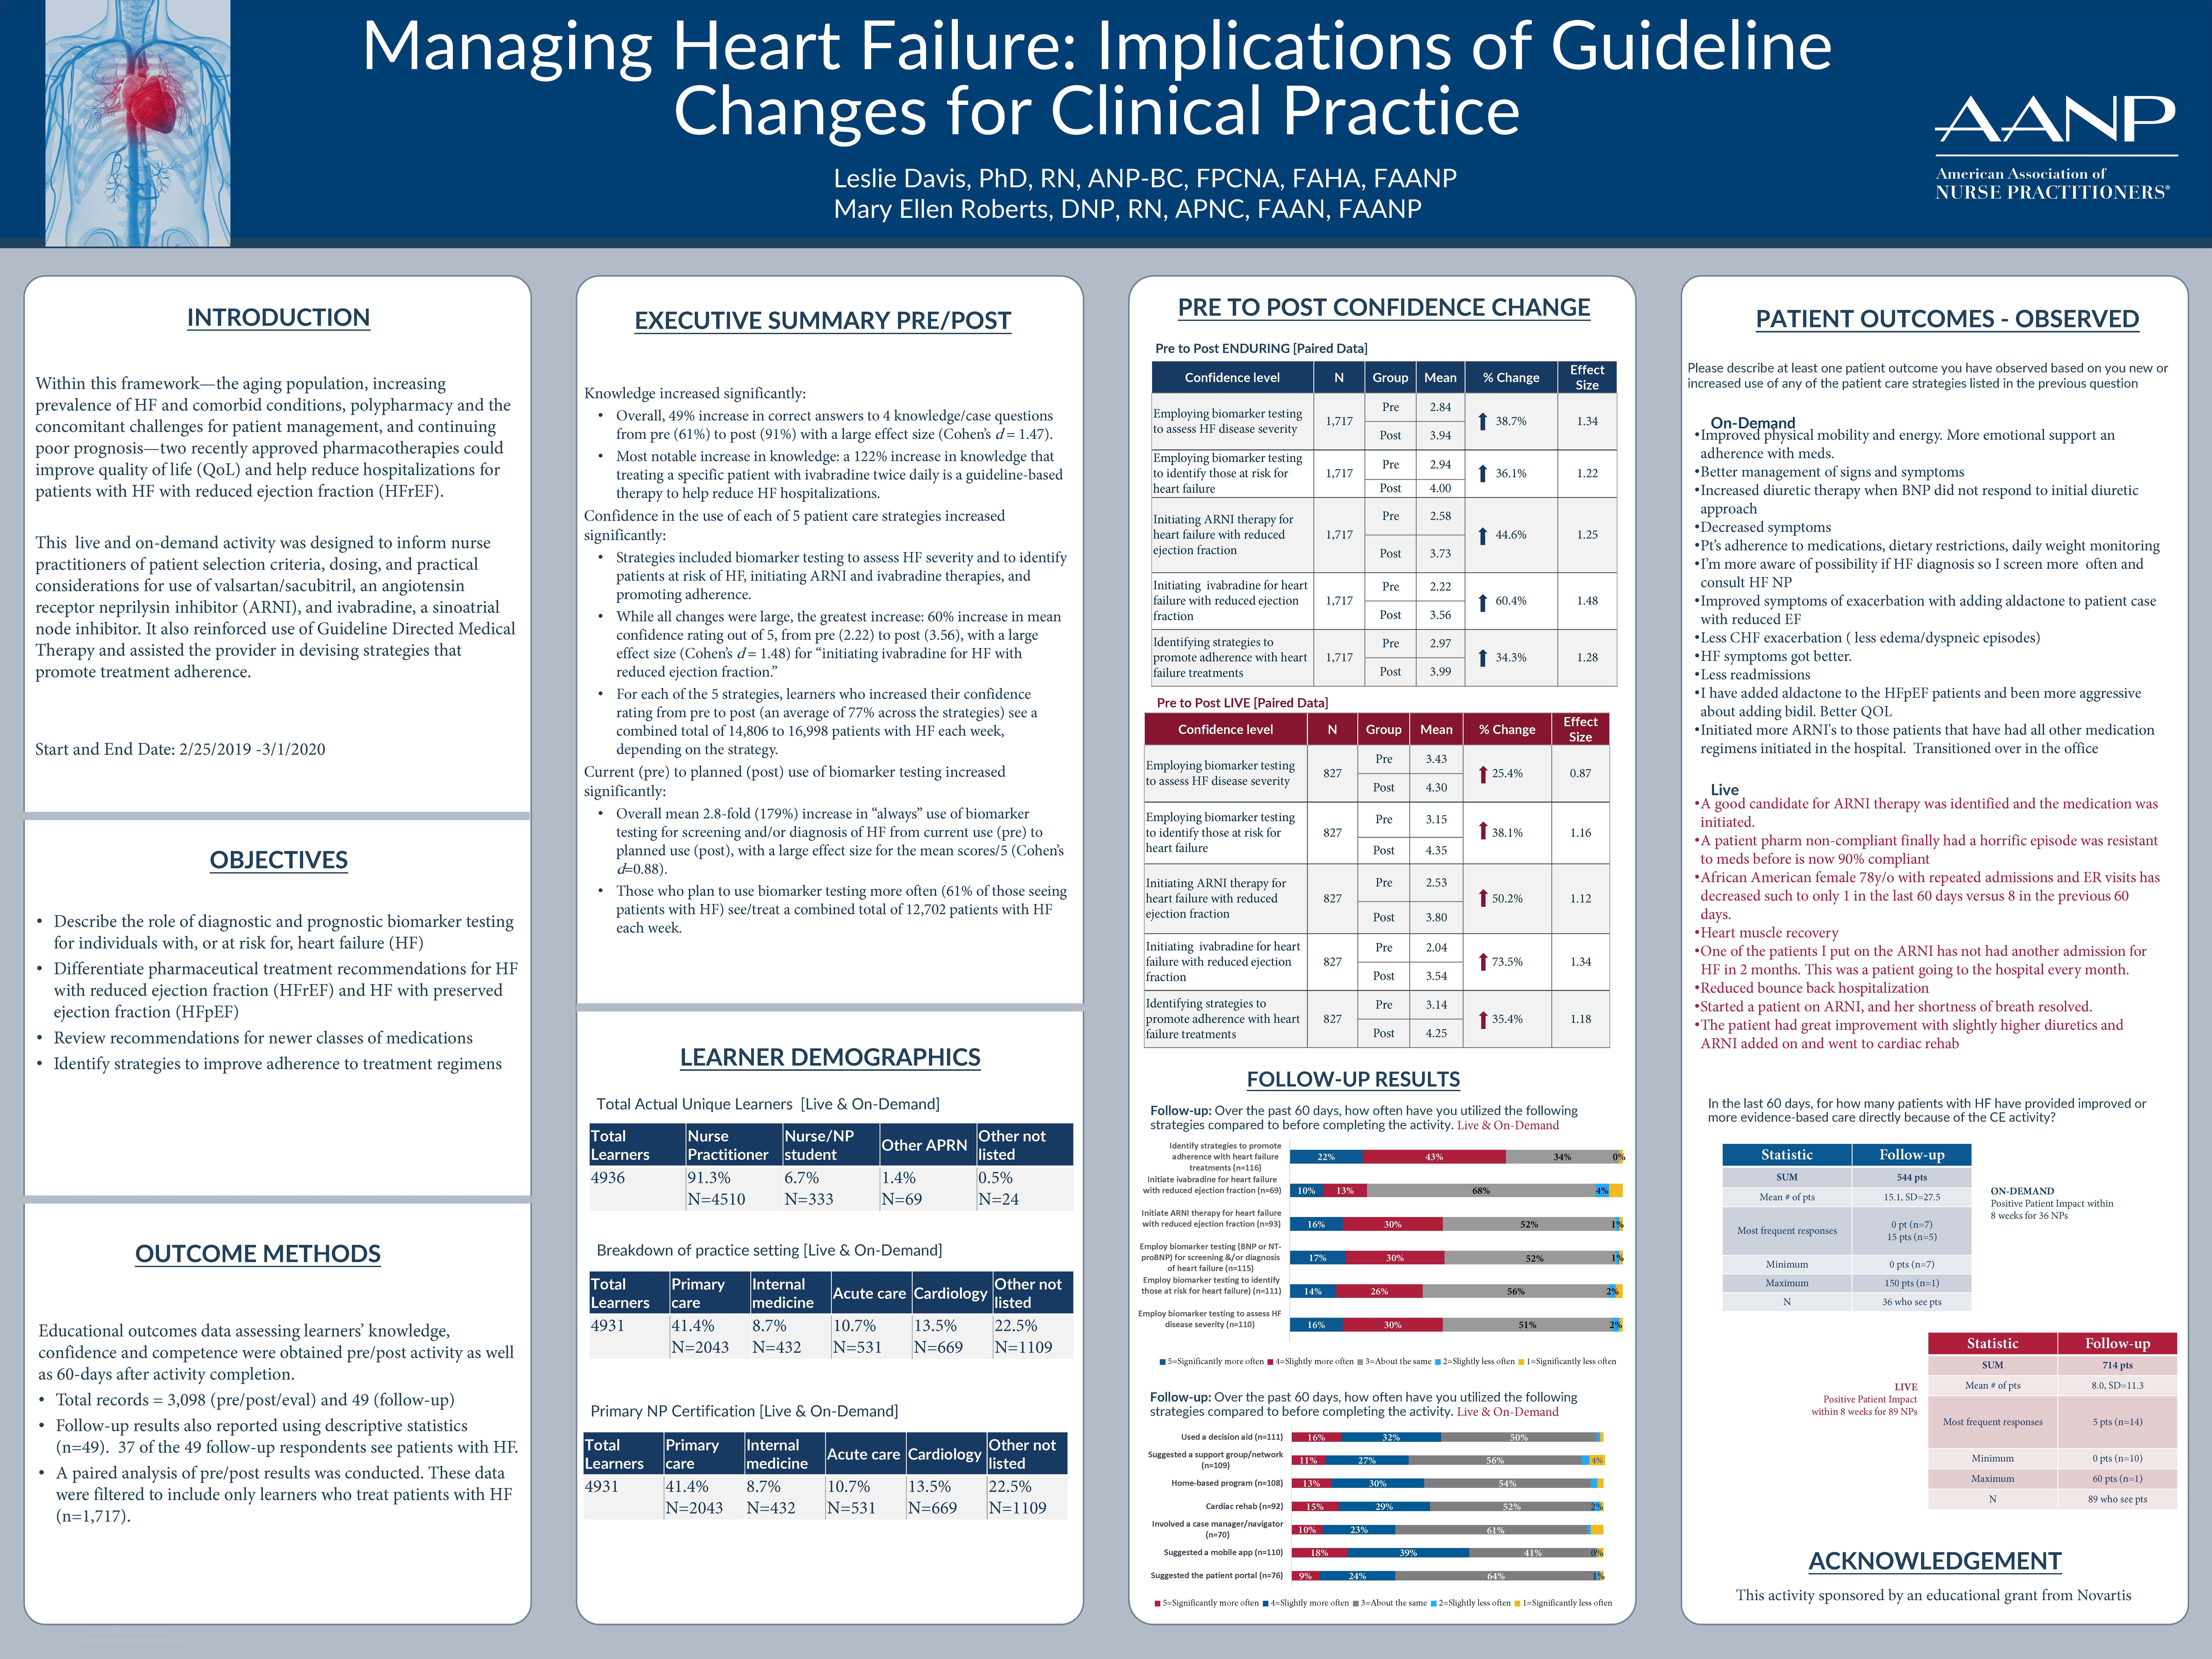 Managing Heart Failure: Implications of Guideline Changes for Clinical Practice